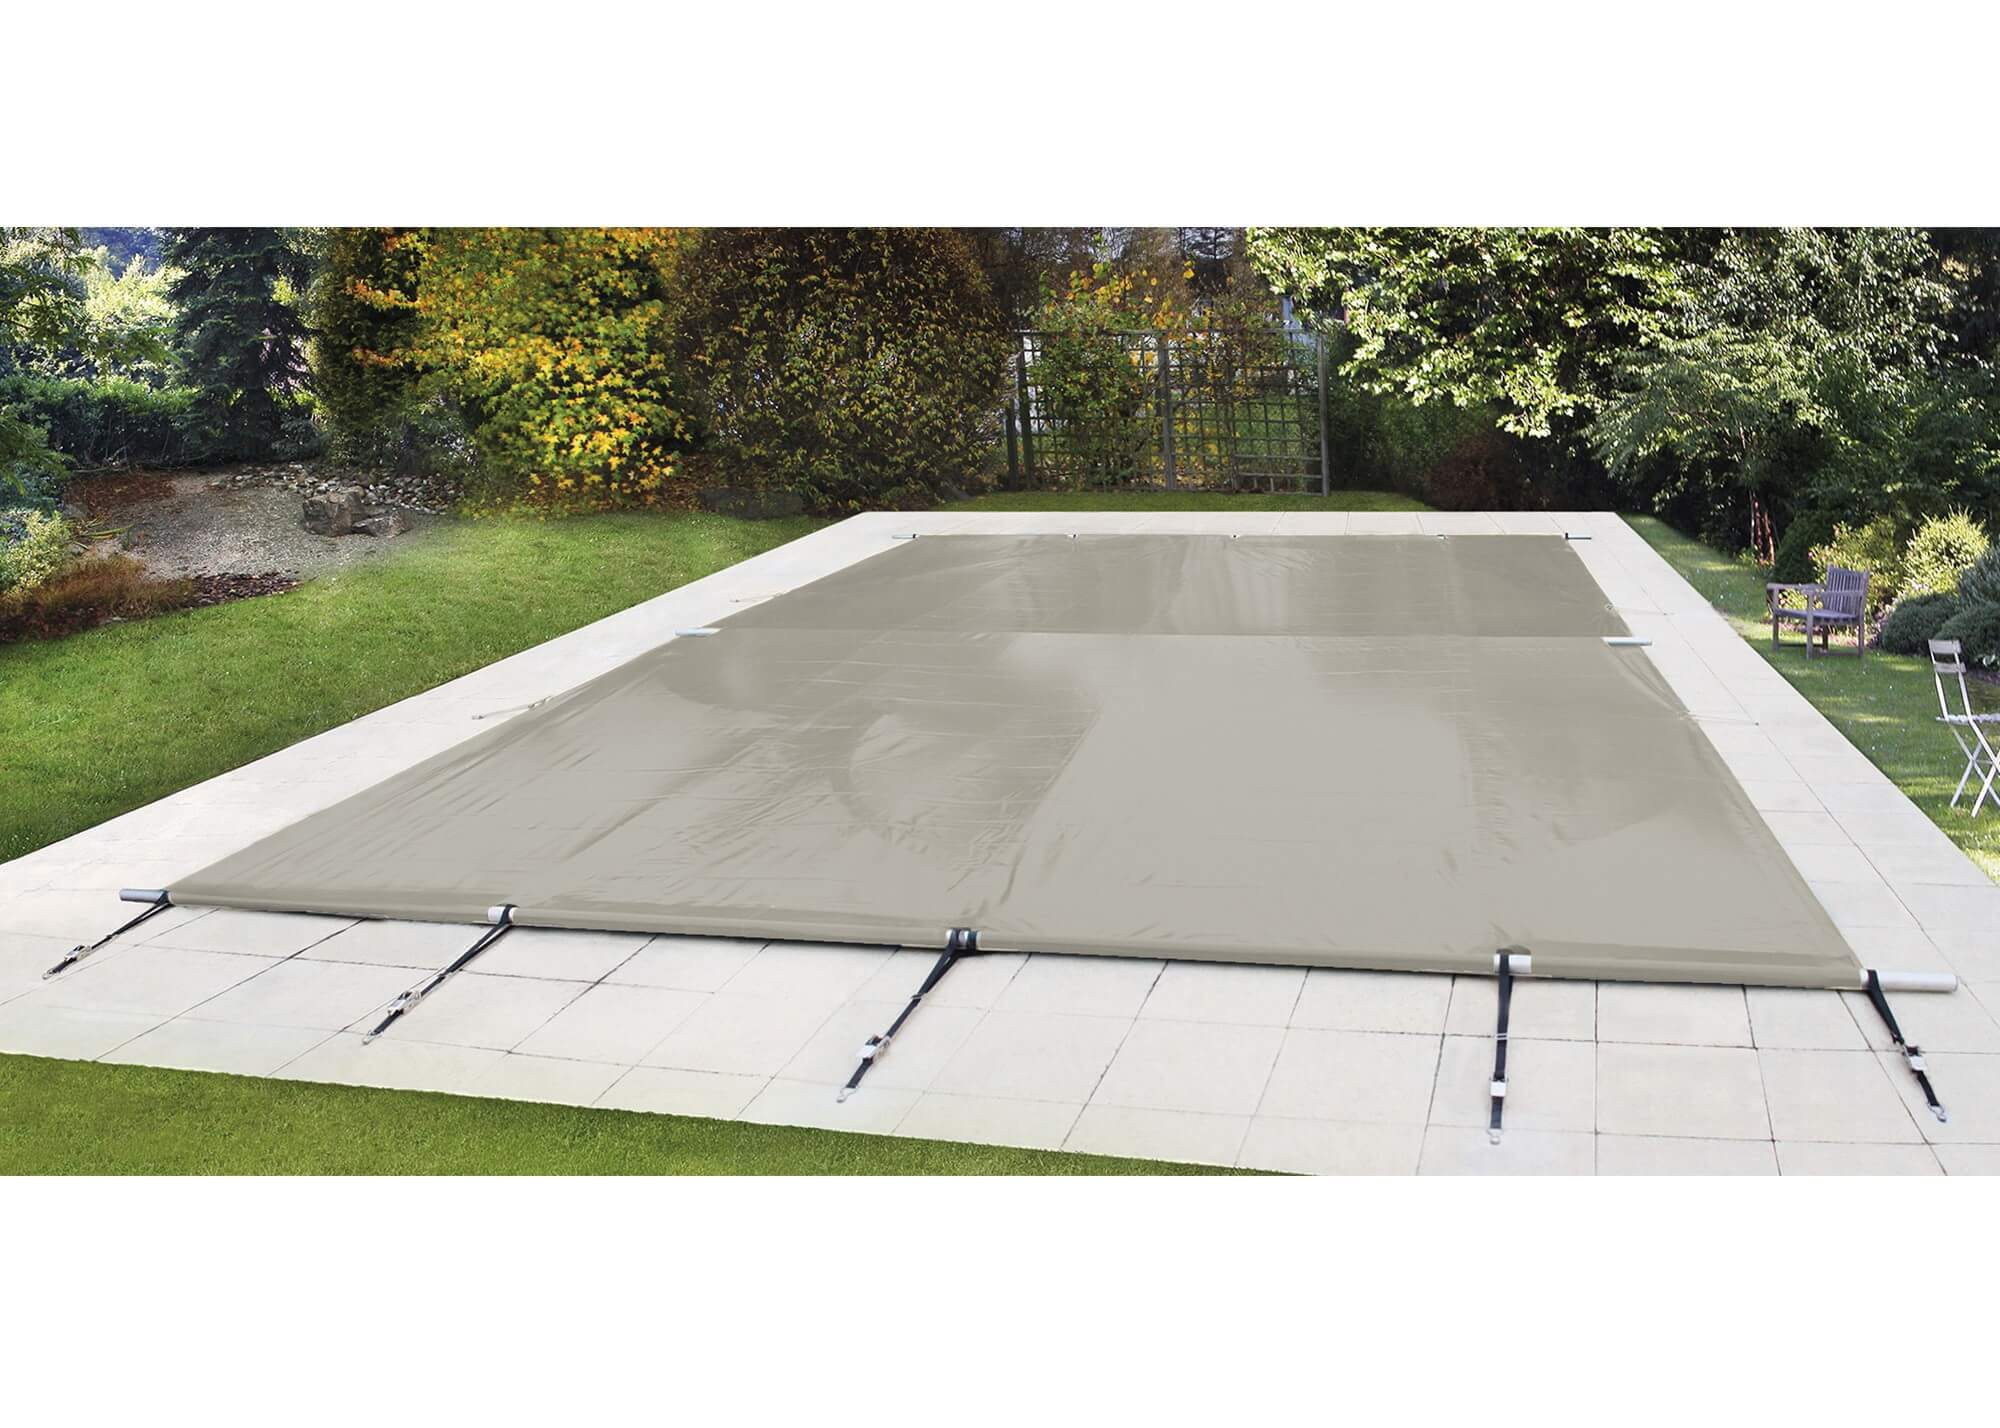 Fixation Bache Piscine Sur Terrasse Bois Coverwat Piscines Waterair